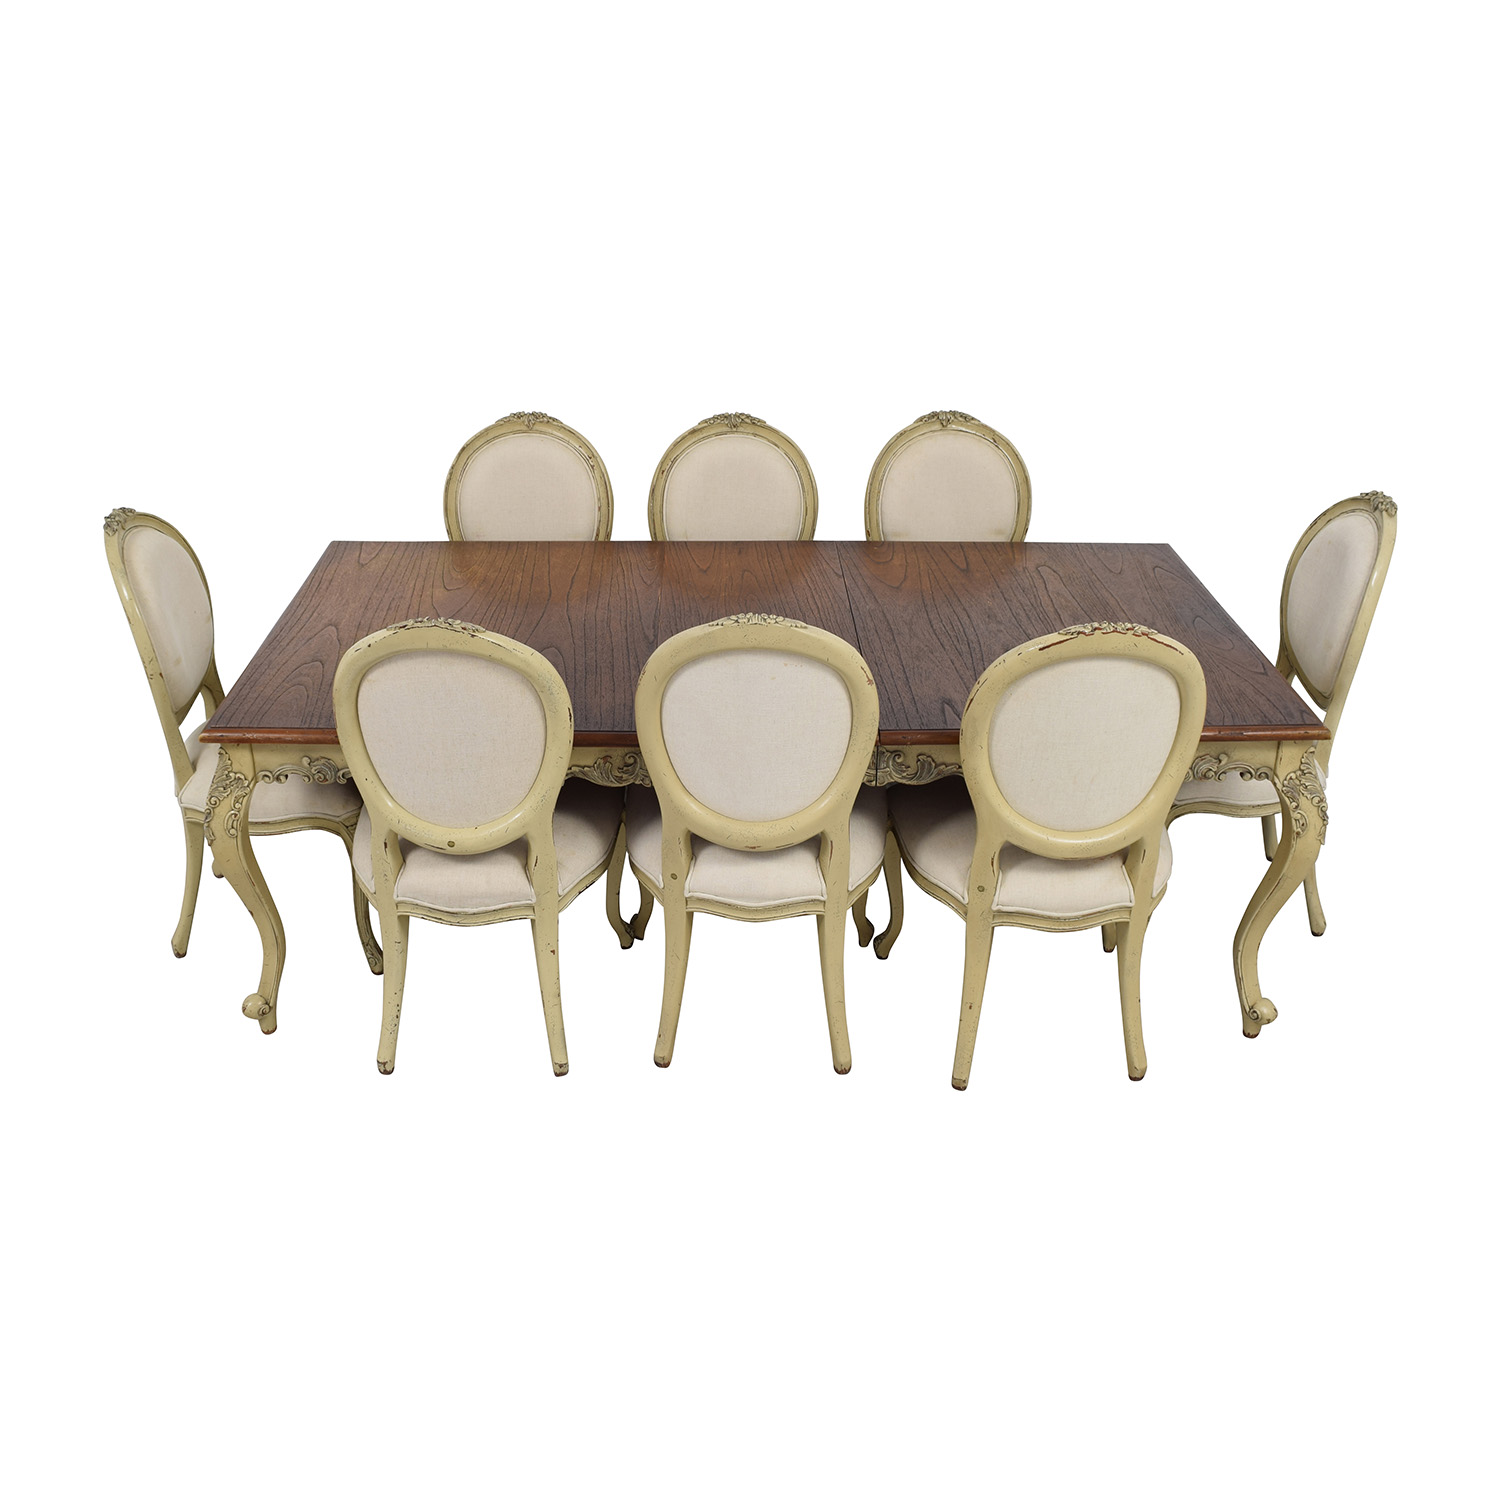 Custom Built Wood Dining Table with Chairs discount